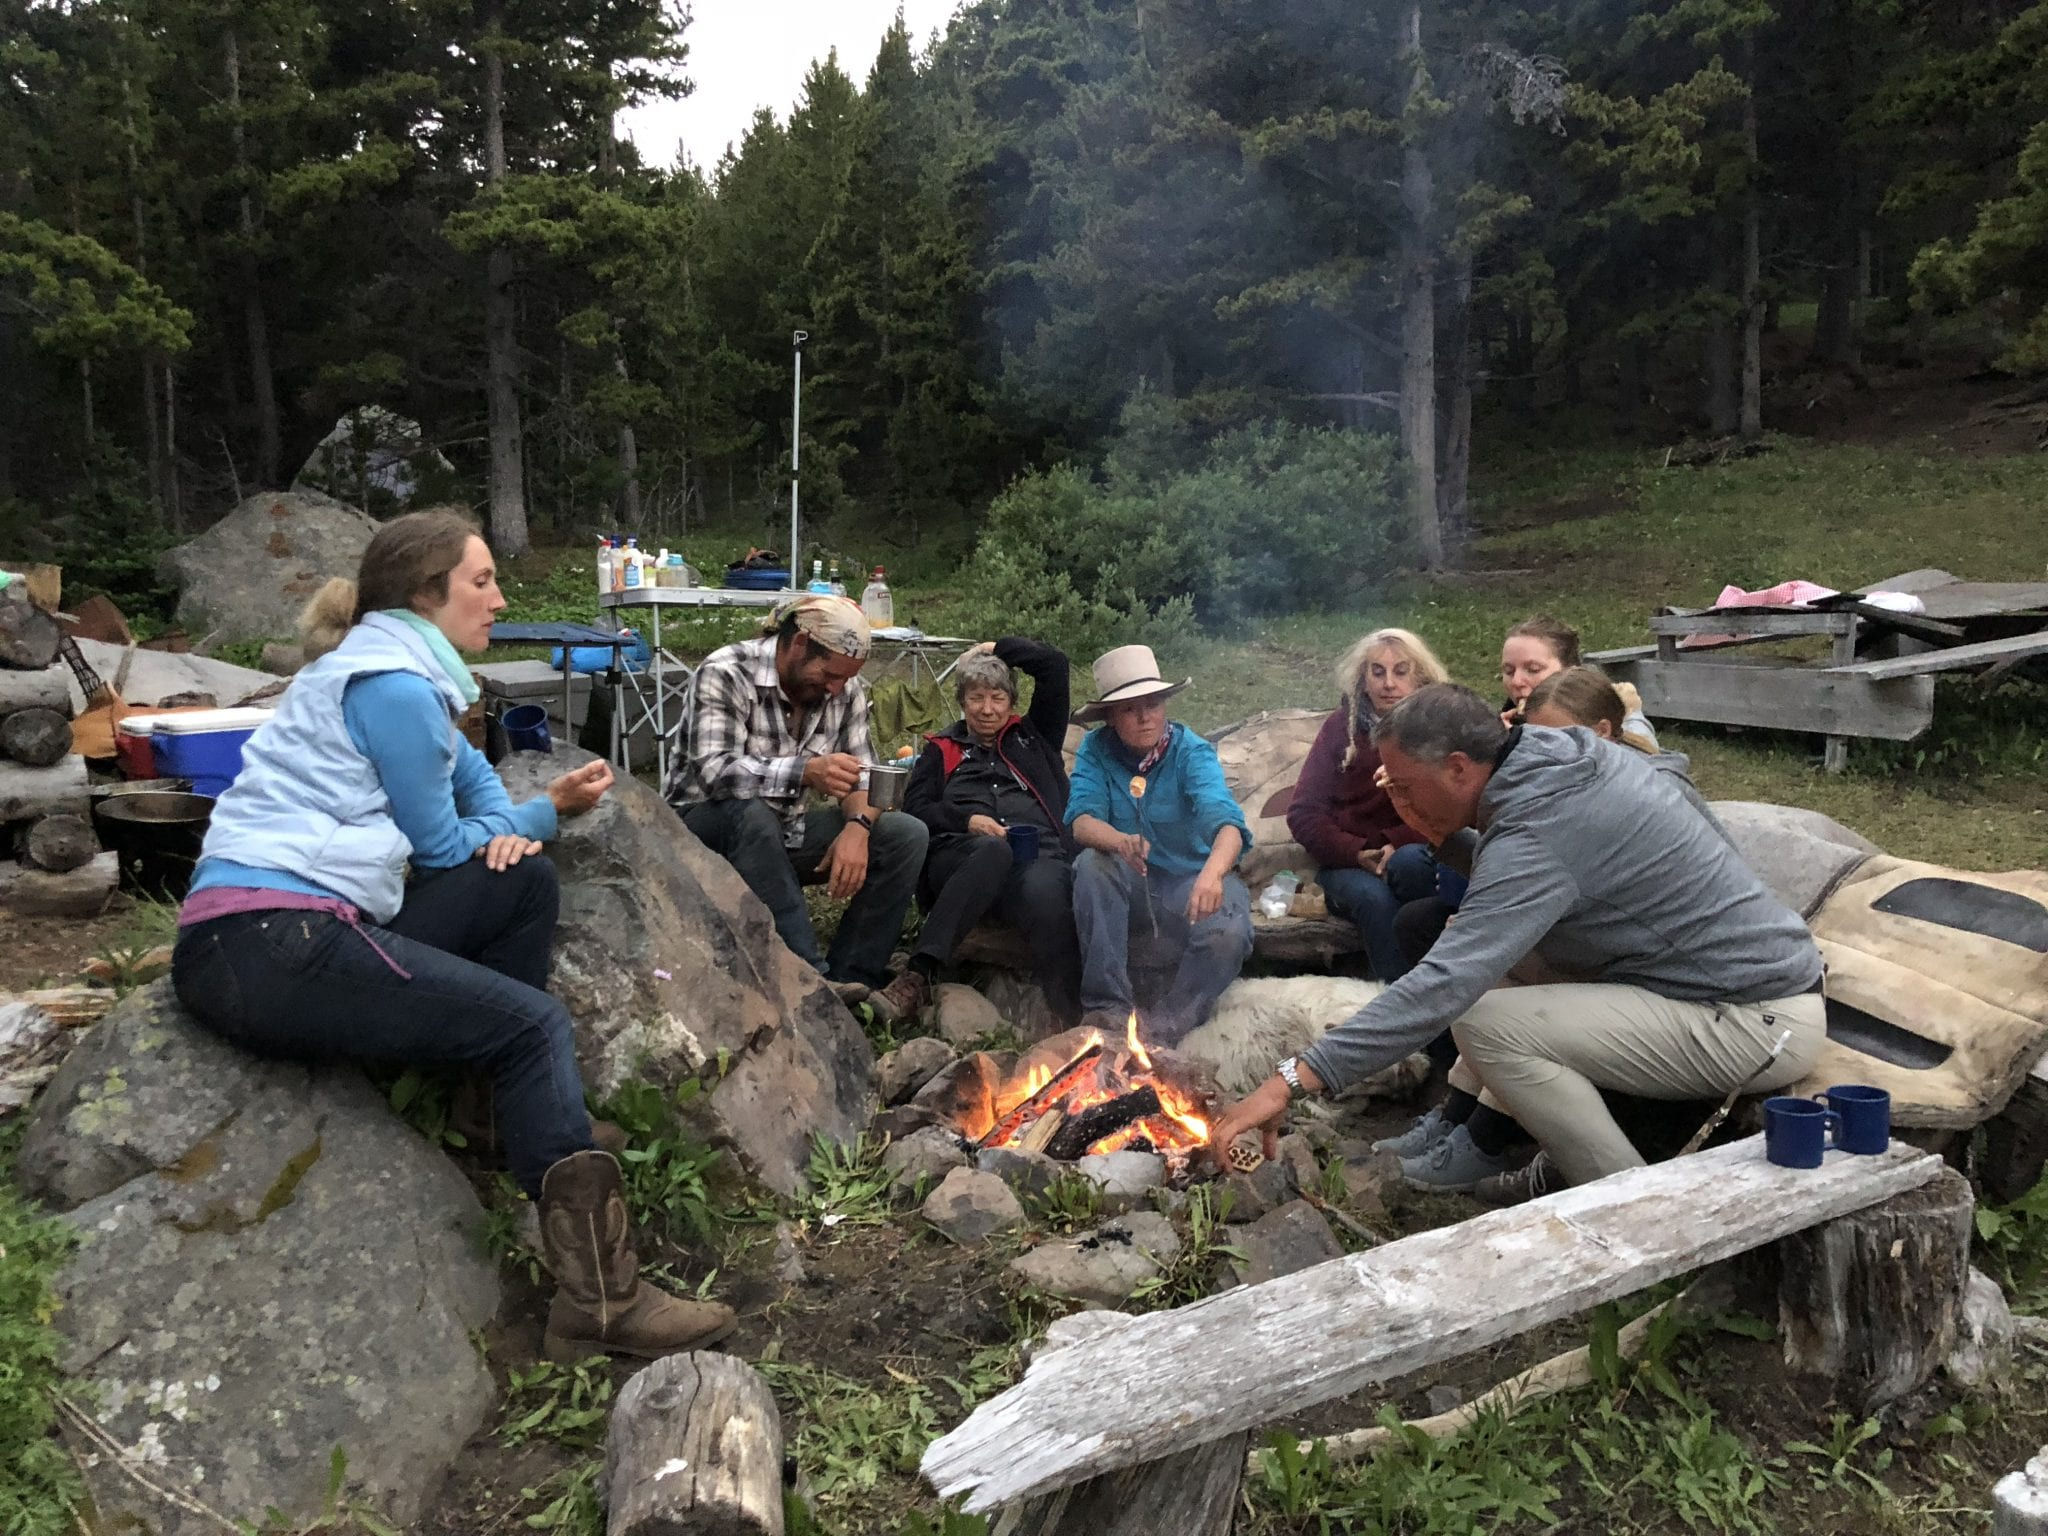 Camp life at end of riding day-Marion Buse